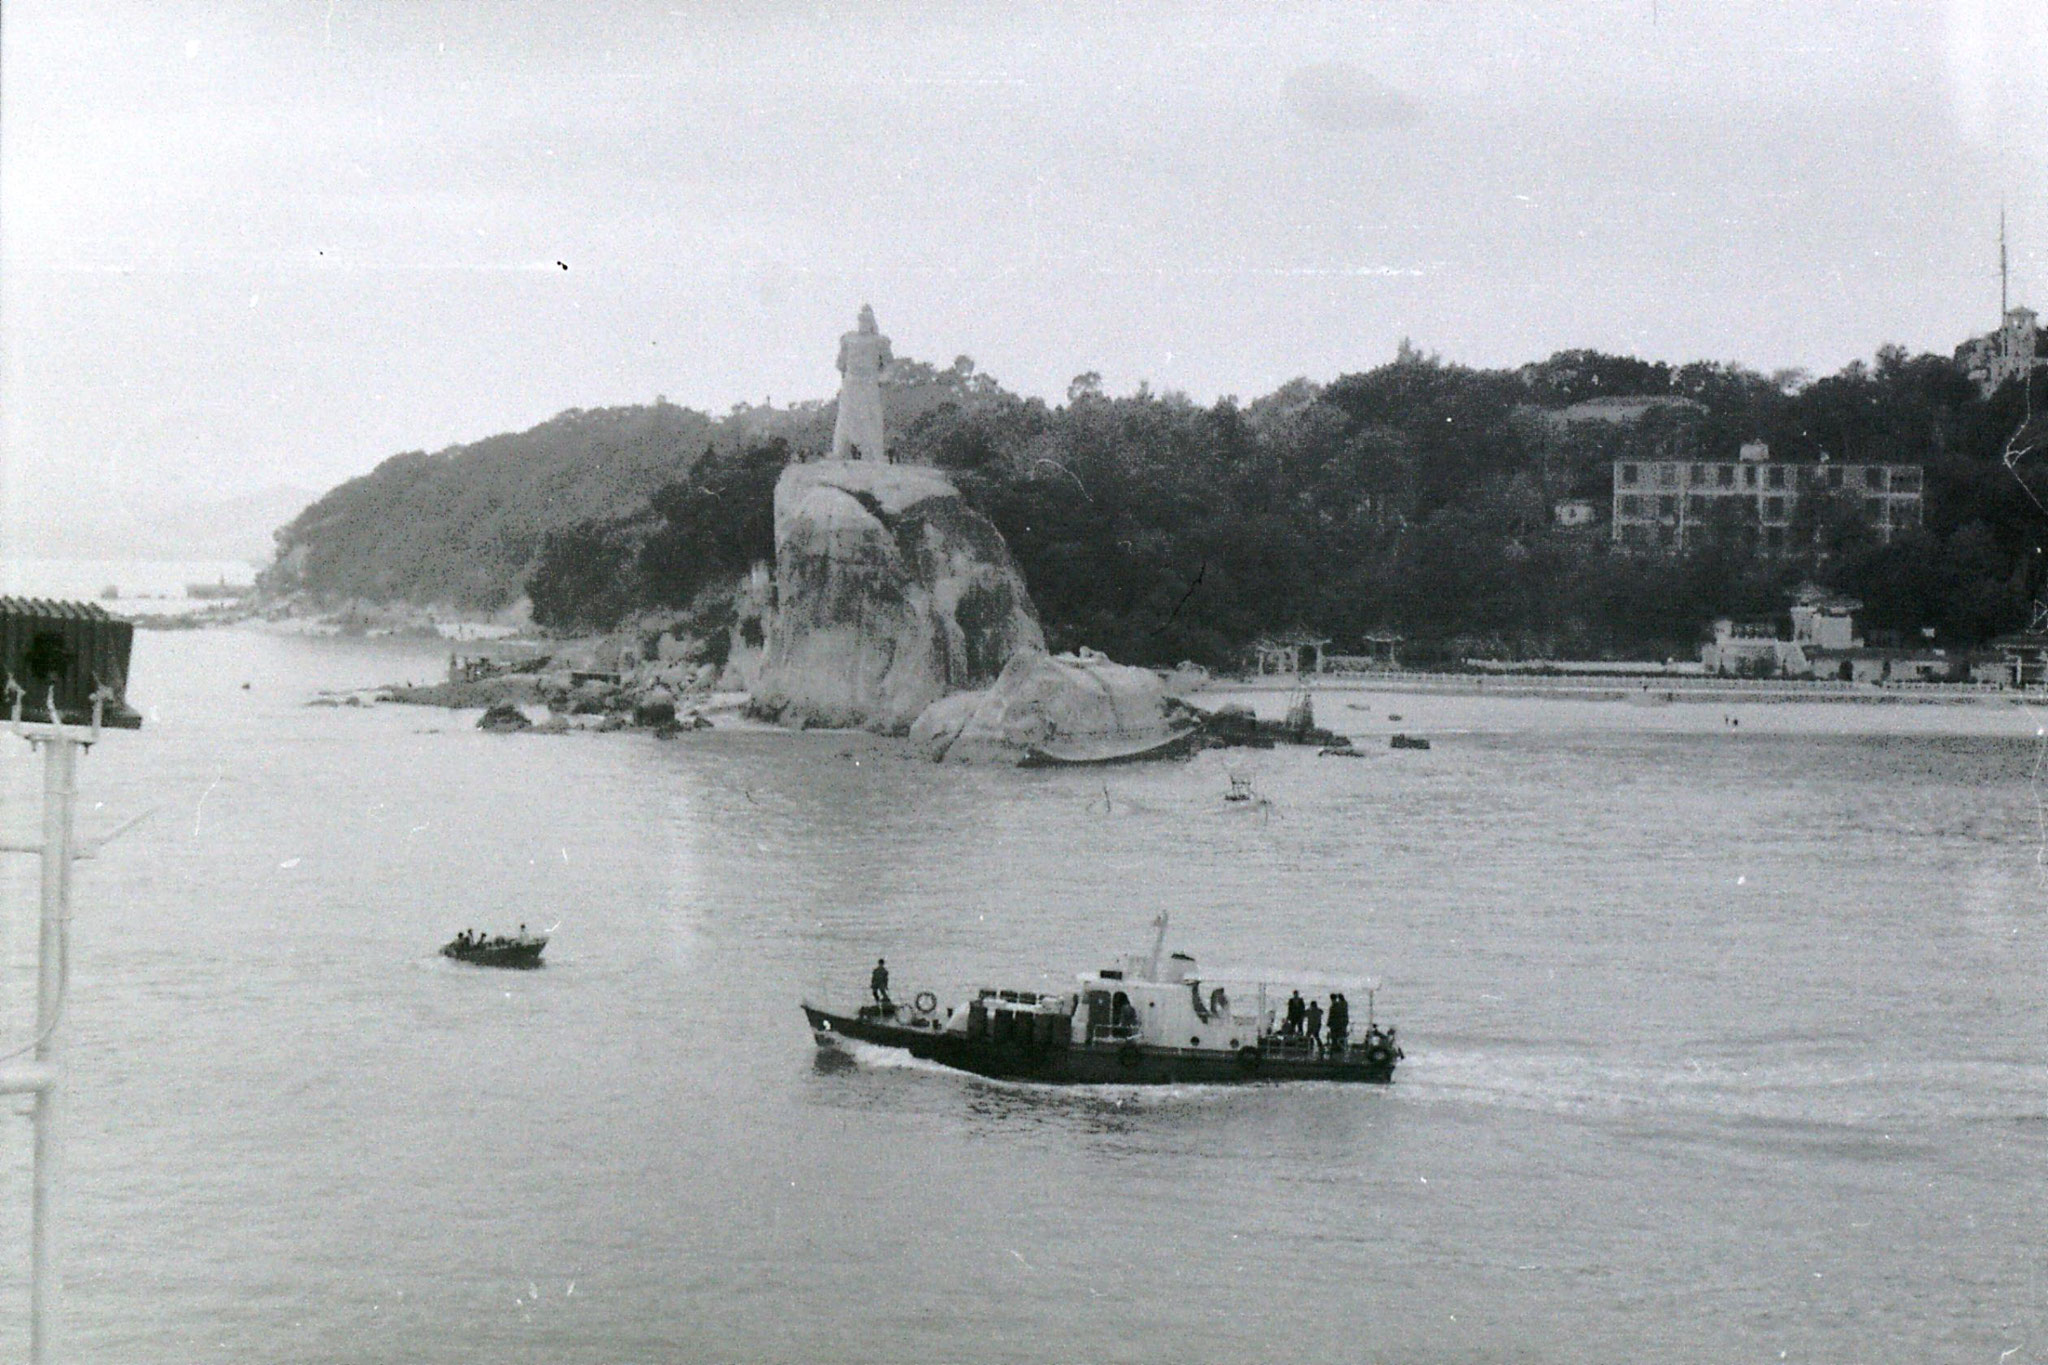 30/3/1989: 0: Gulanggu from ship leaving for Hong Kong